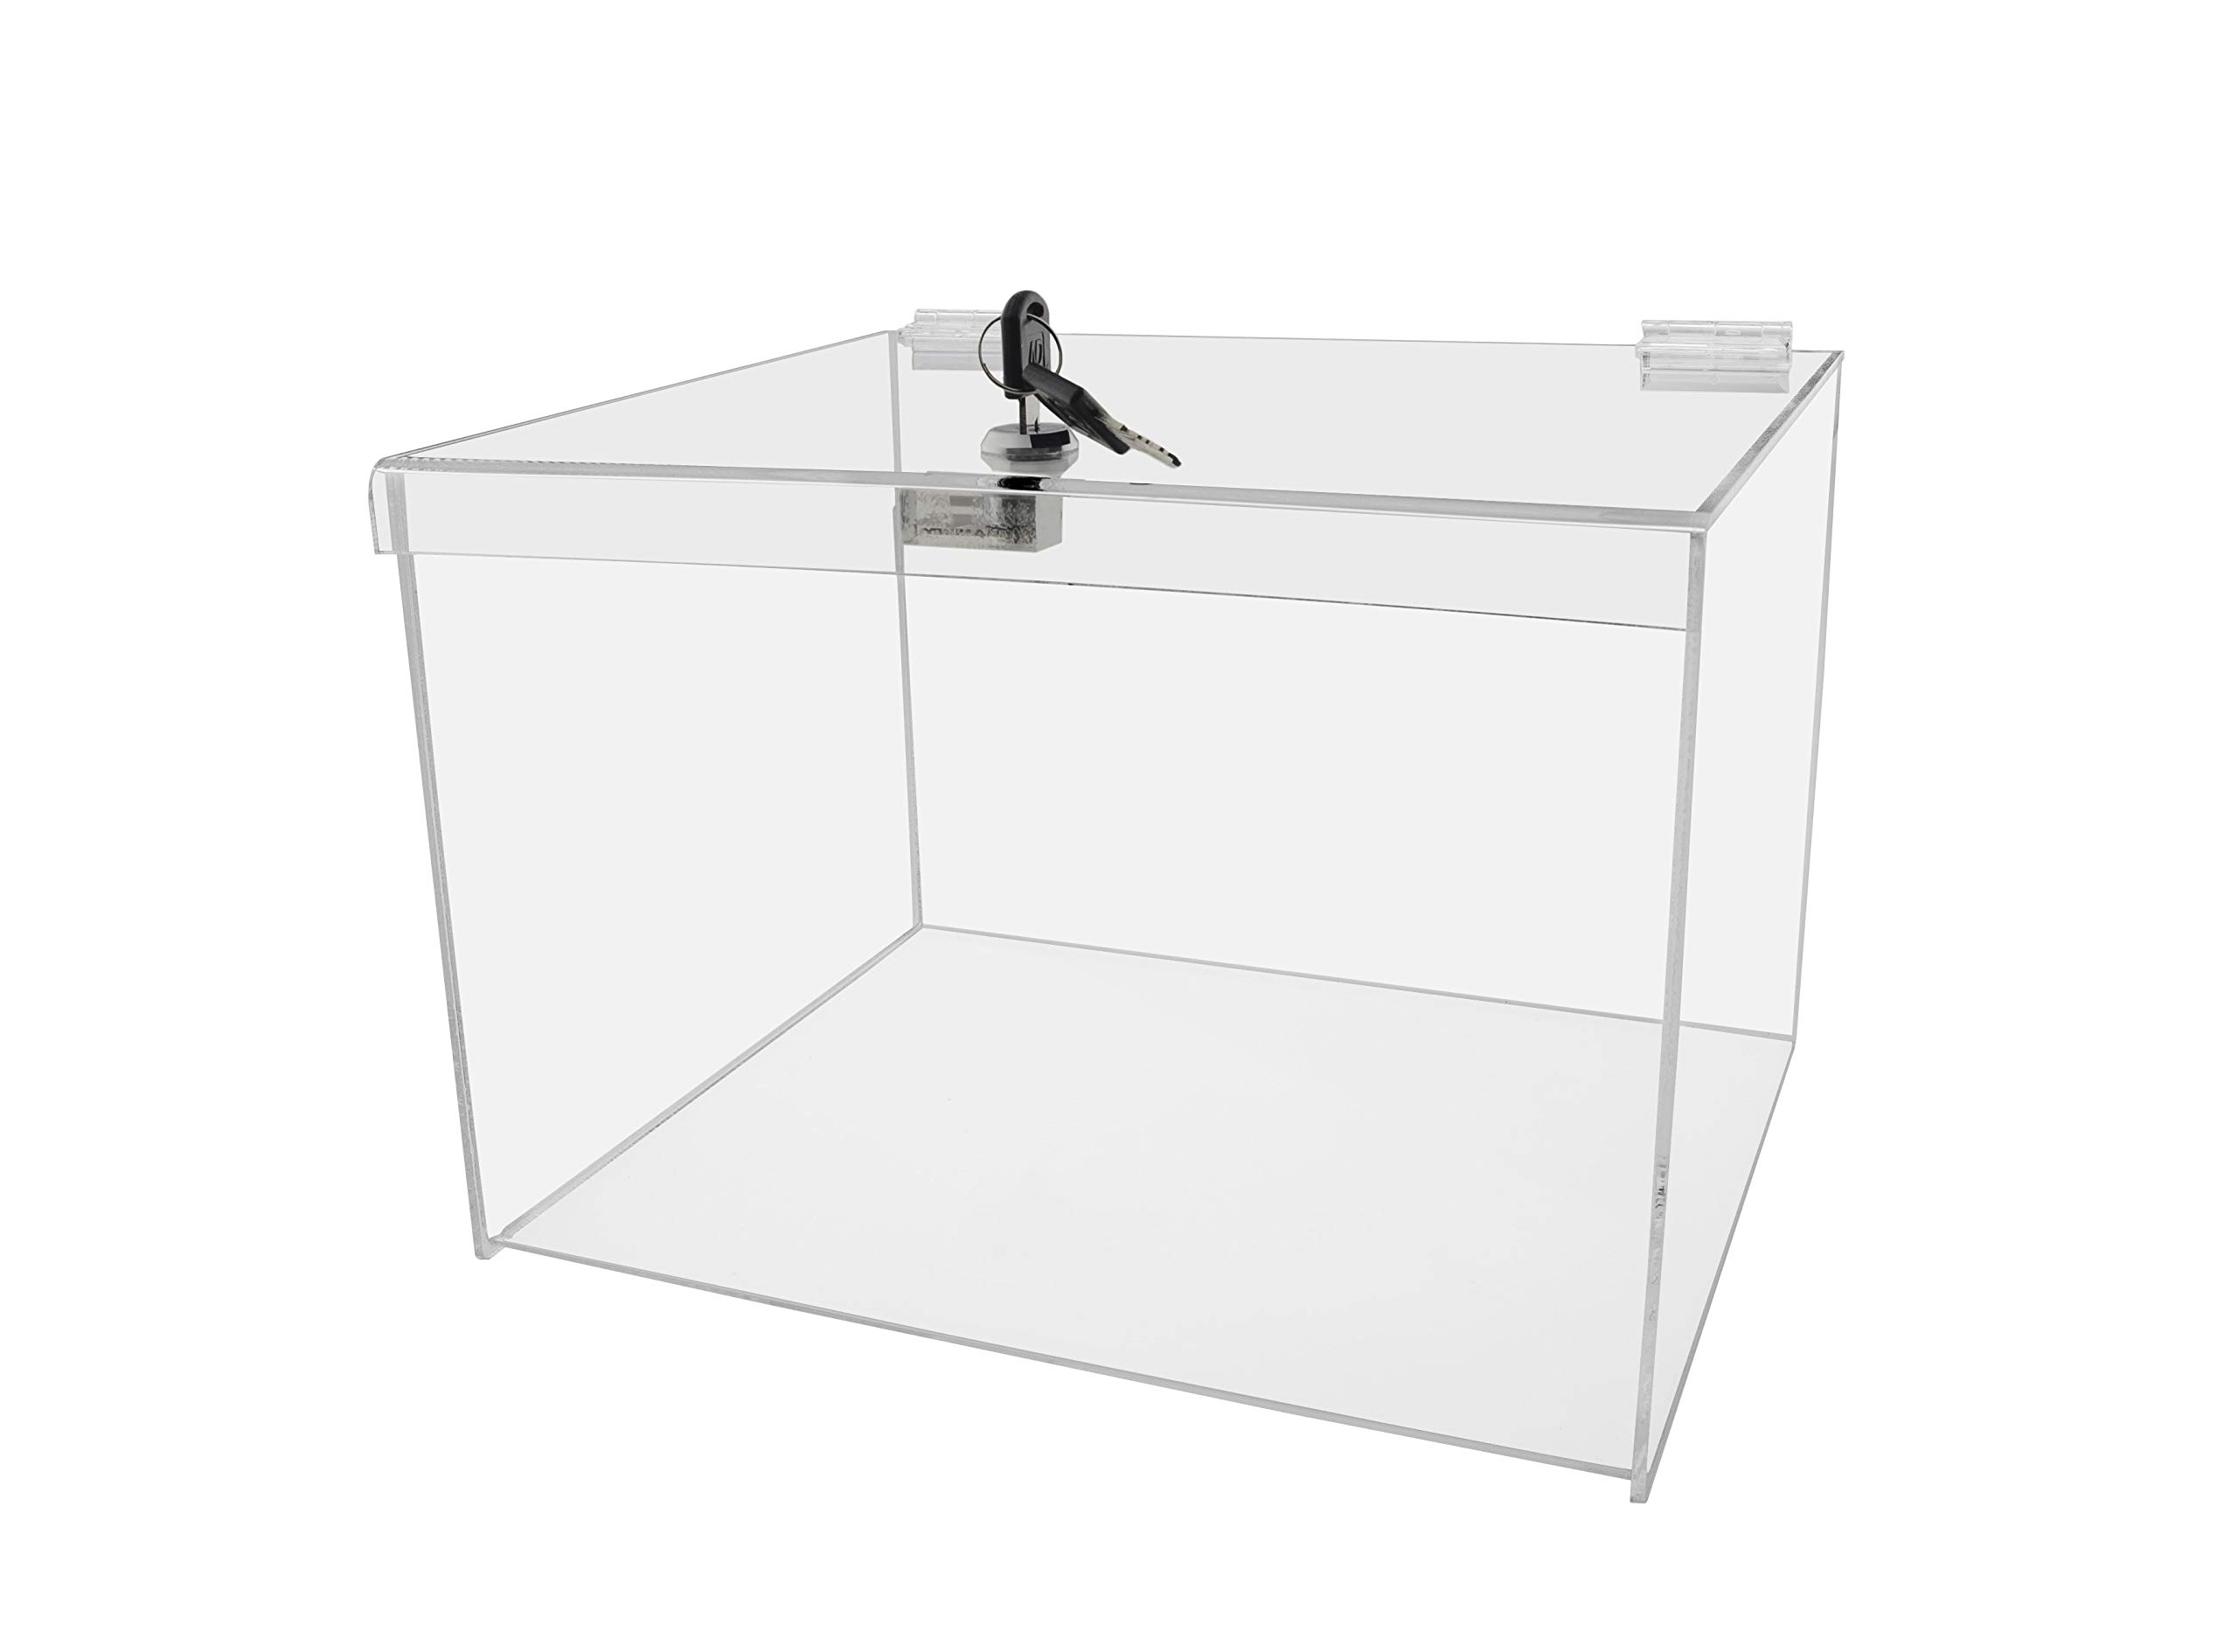 Marketing Holders Acrylic Lucite Security Show Case 12''w x 10''d x 8''h Locking Safe Box Donation Collectible Trinket Display Locking Case by Marketing Holders